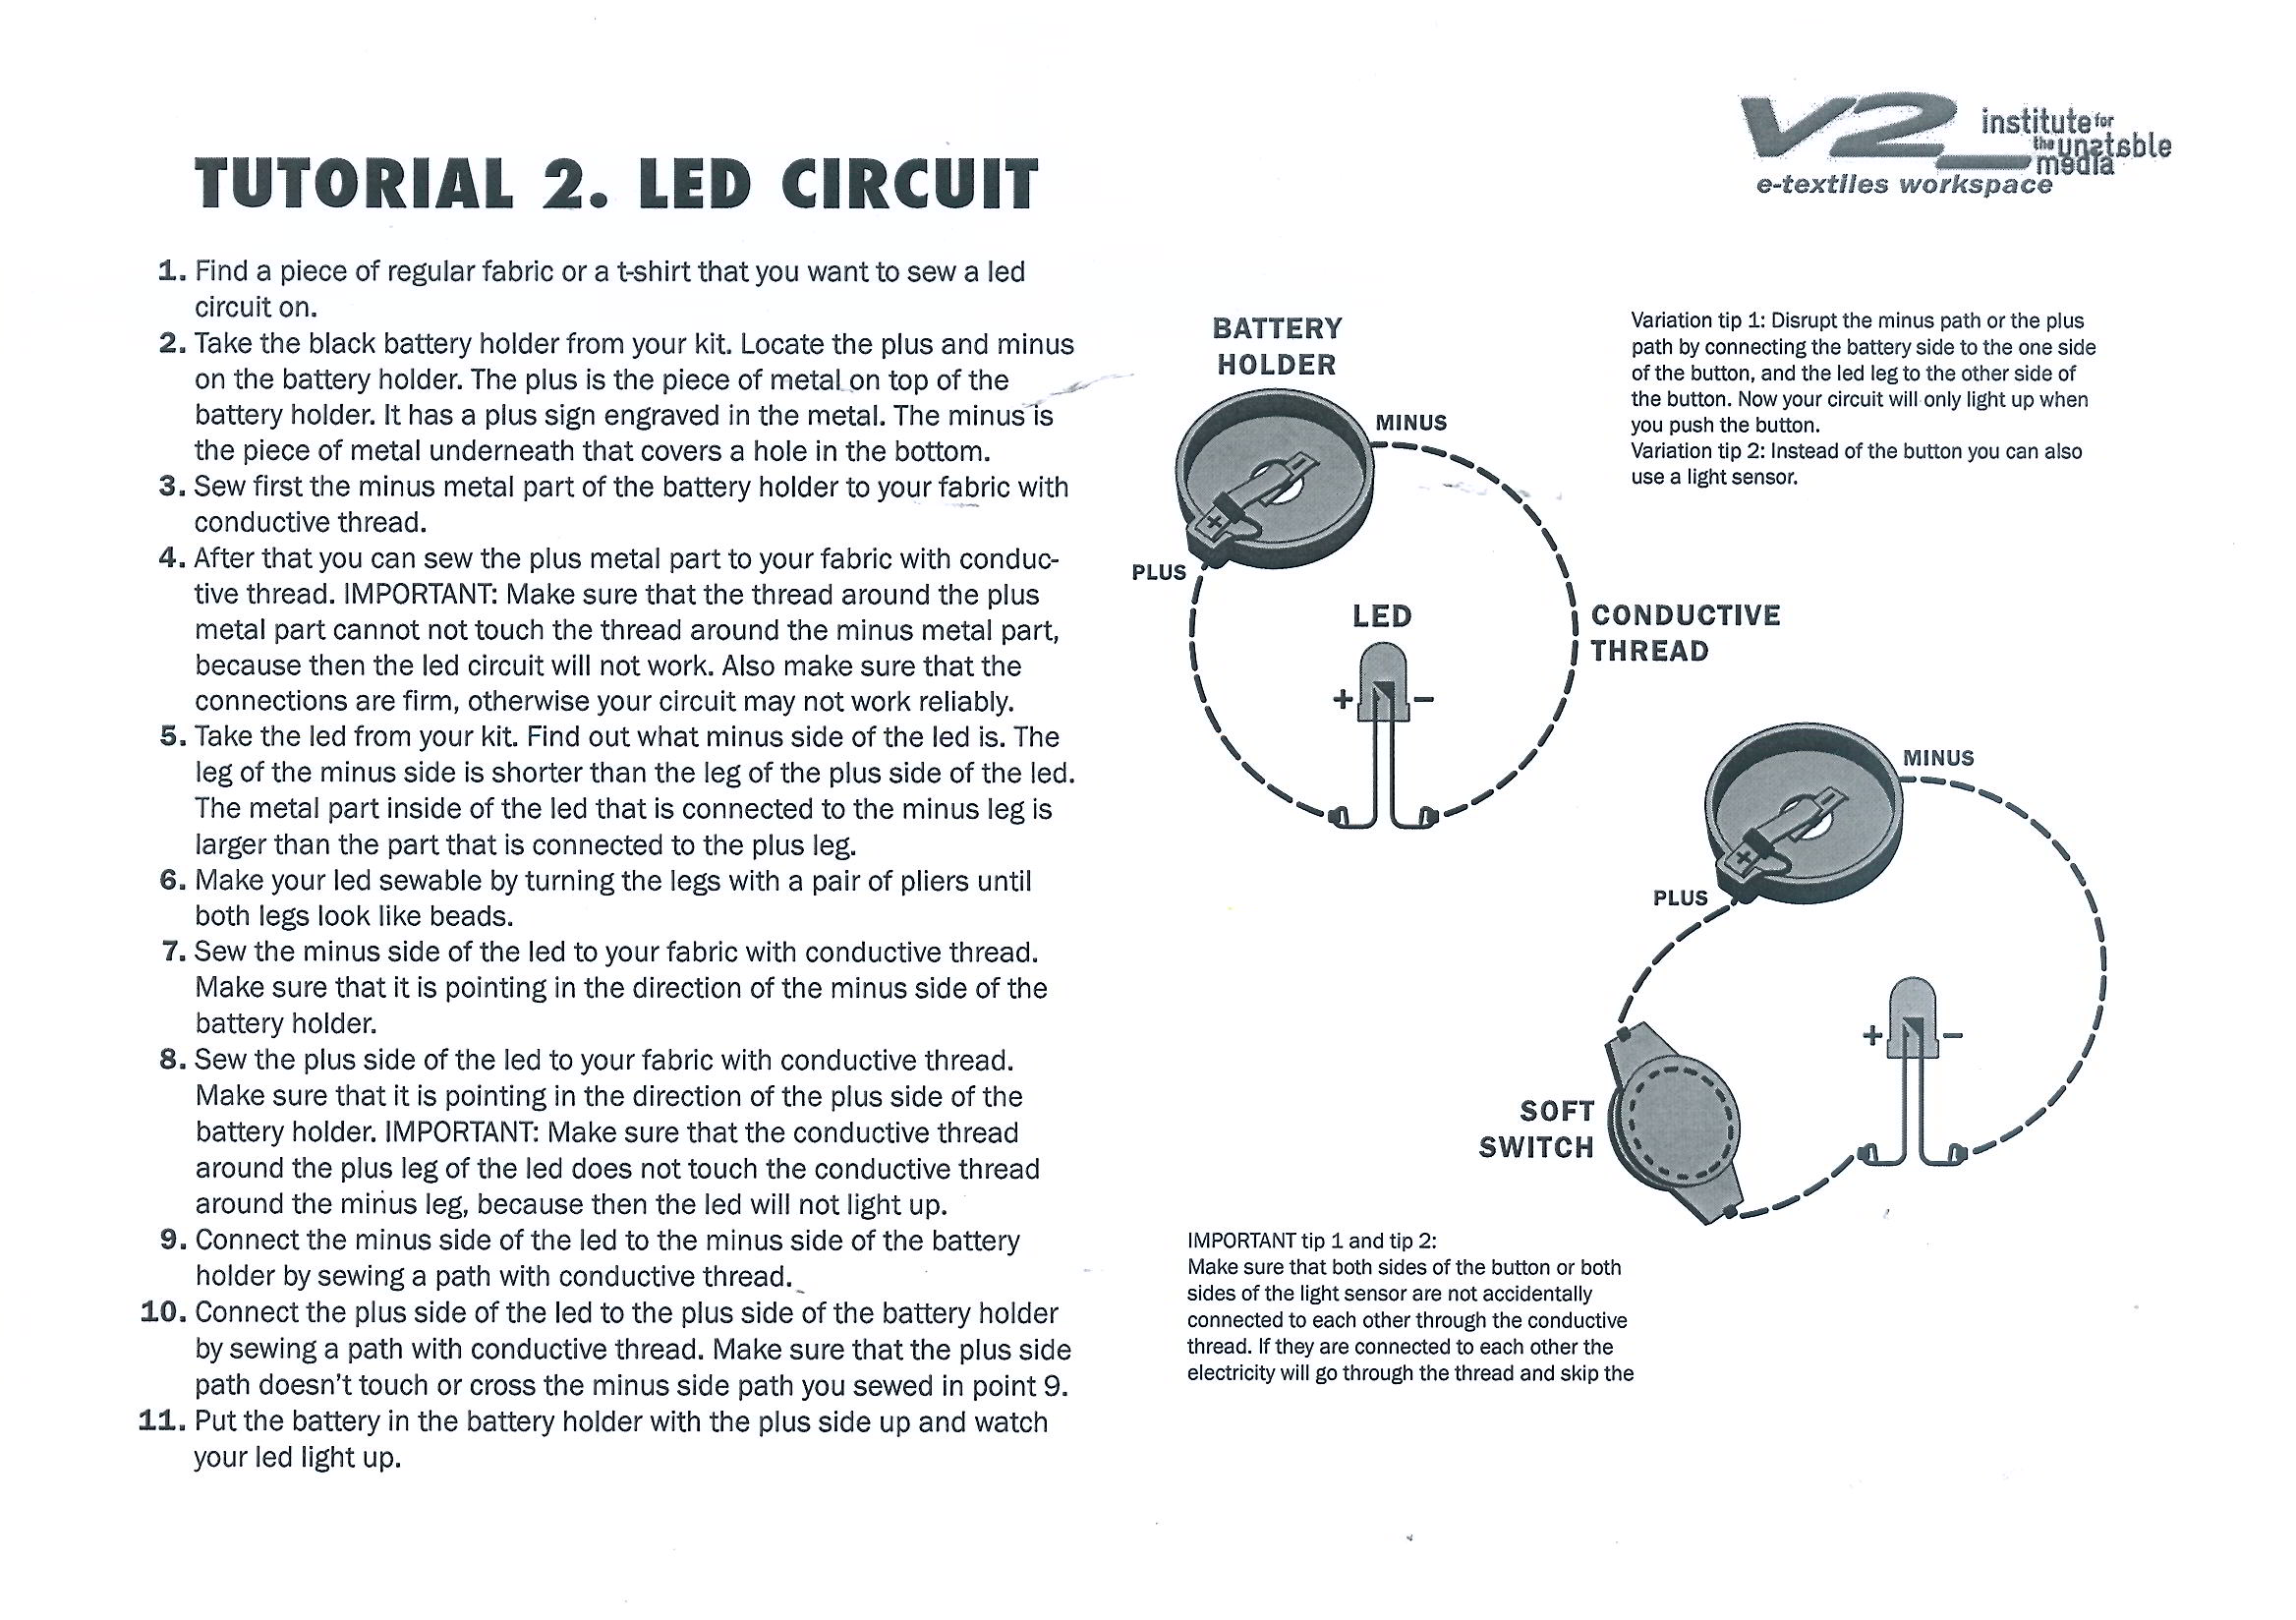 Simple Led Circuit With Switch Switch The Led On Circuit